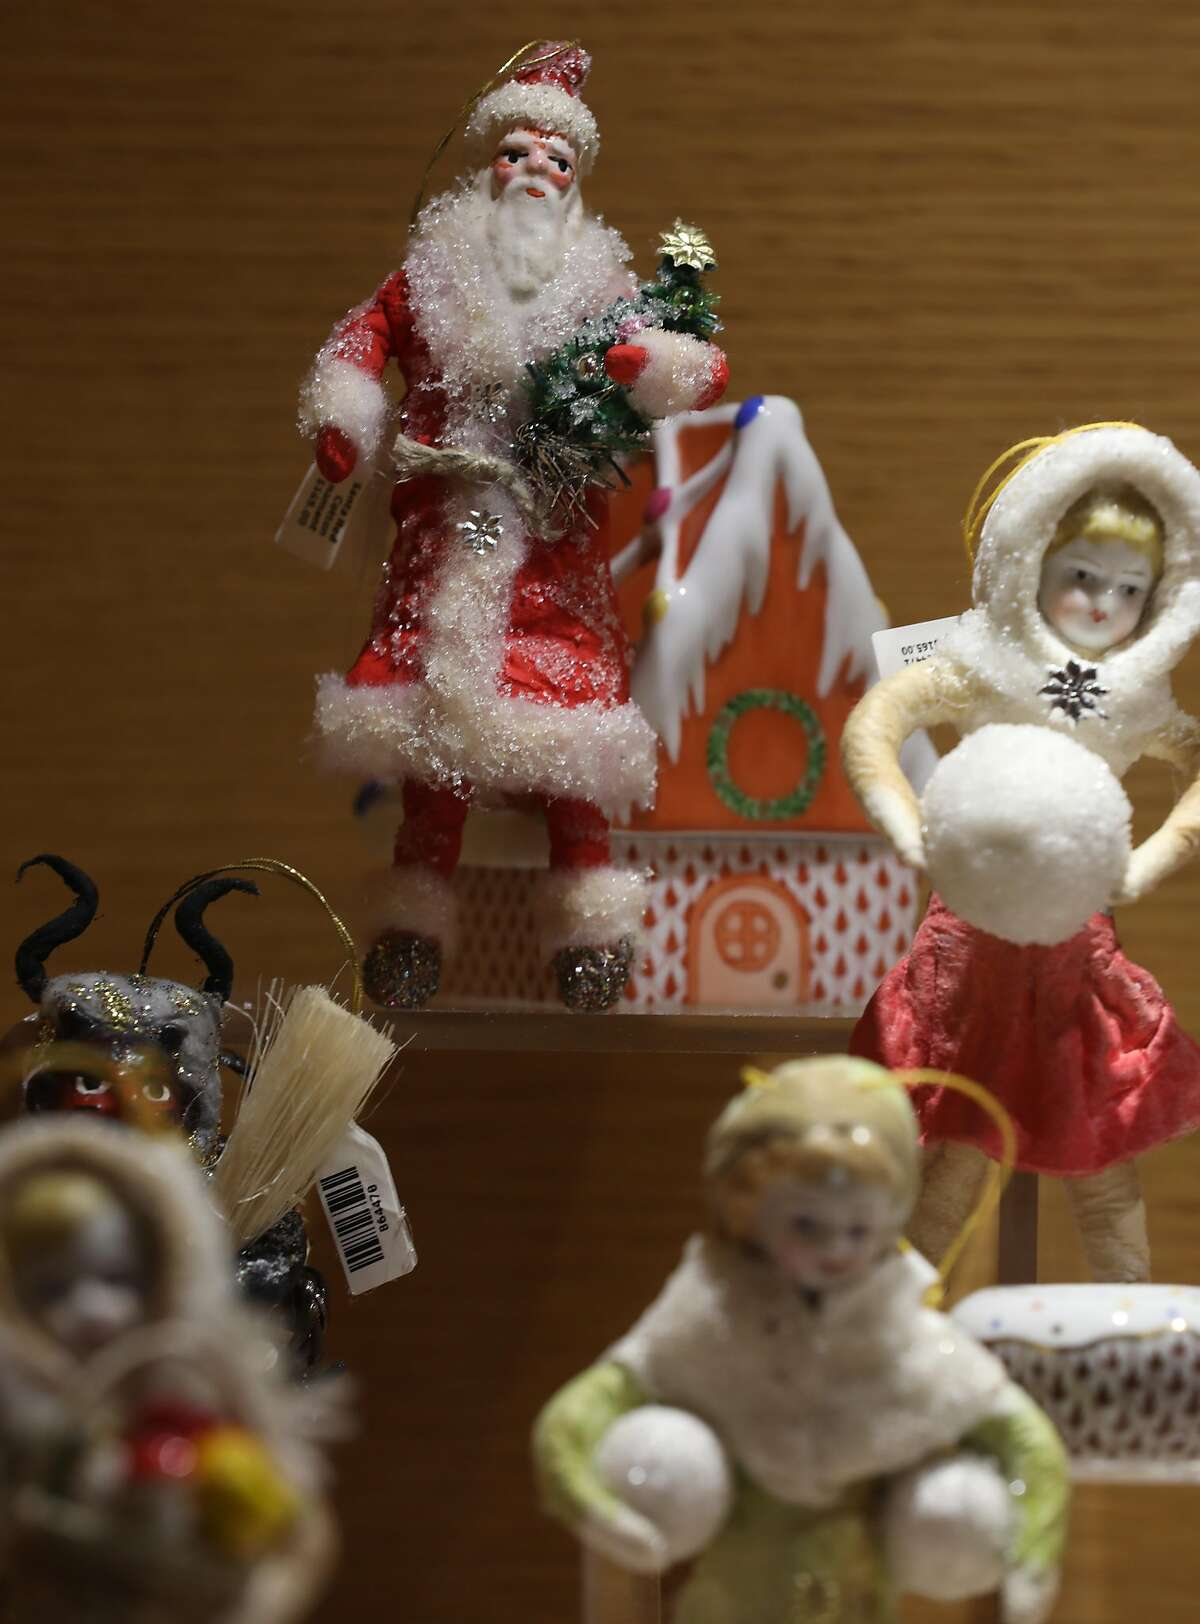 Holiday ceramic figurine display seen at Gump's on Thursday, Oct. 15, 2020, in San Francisco, Calif.